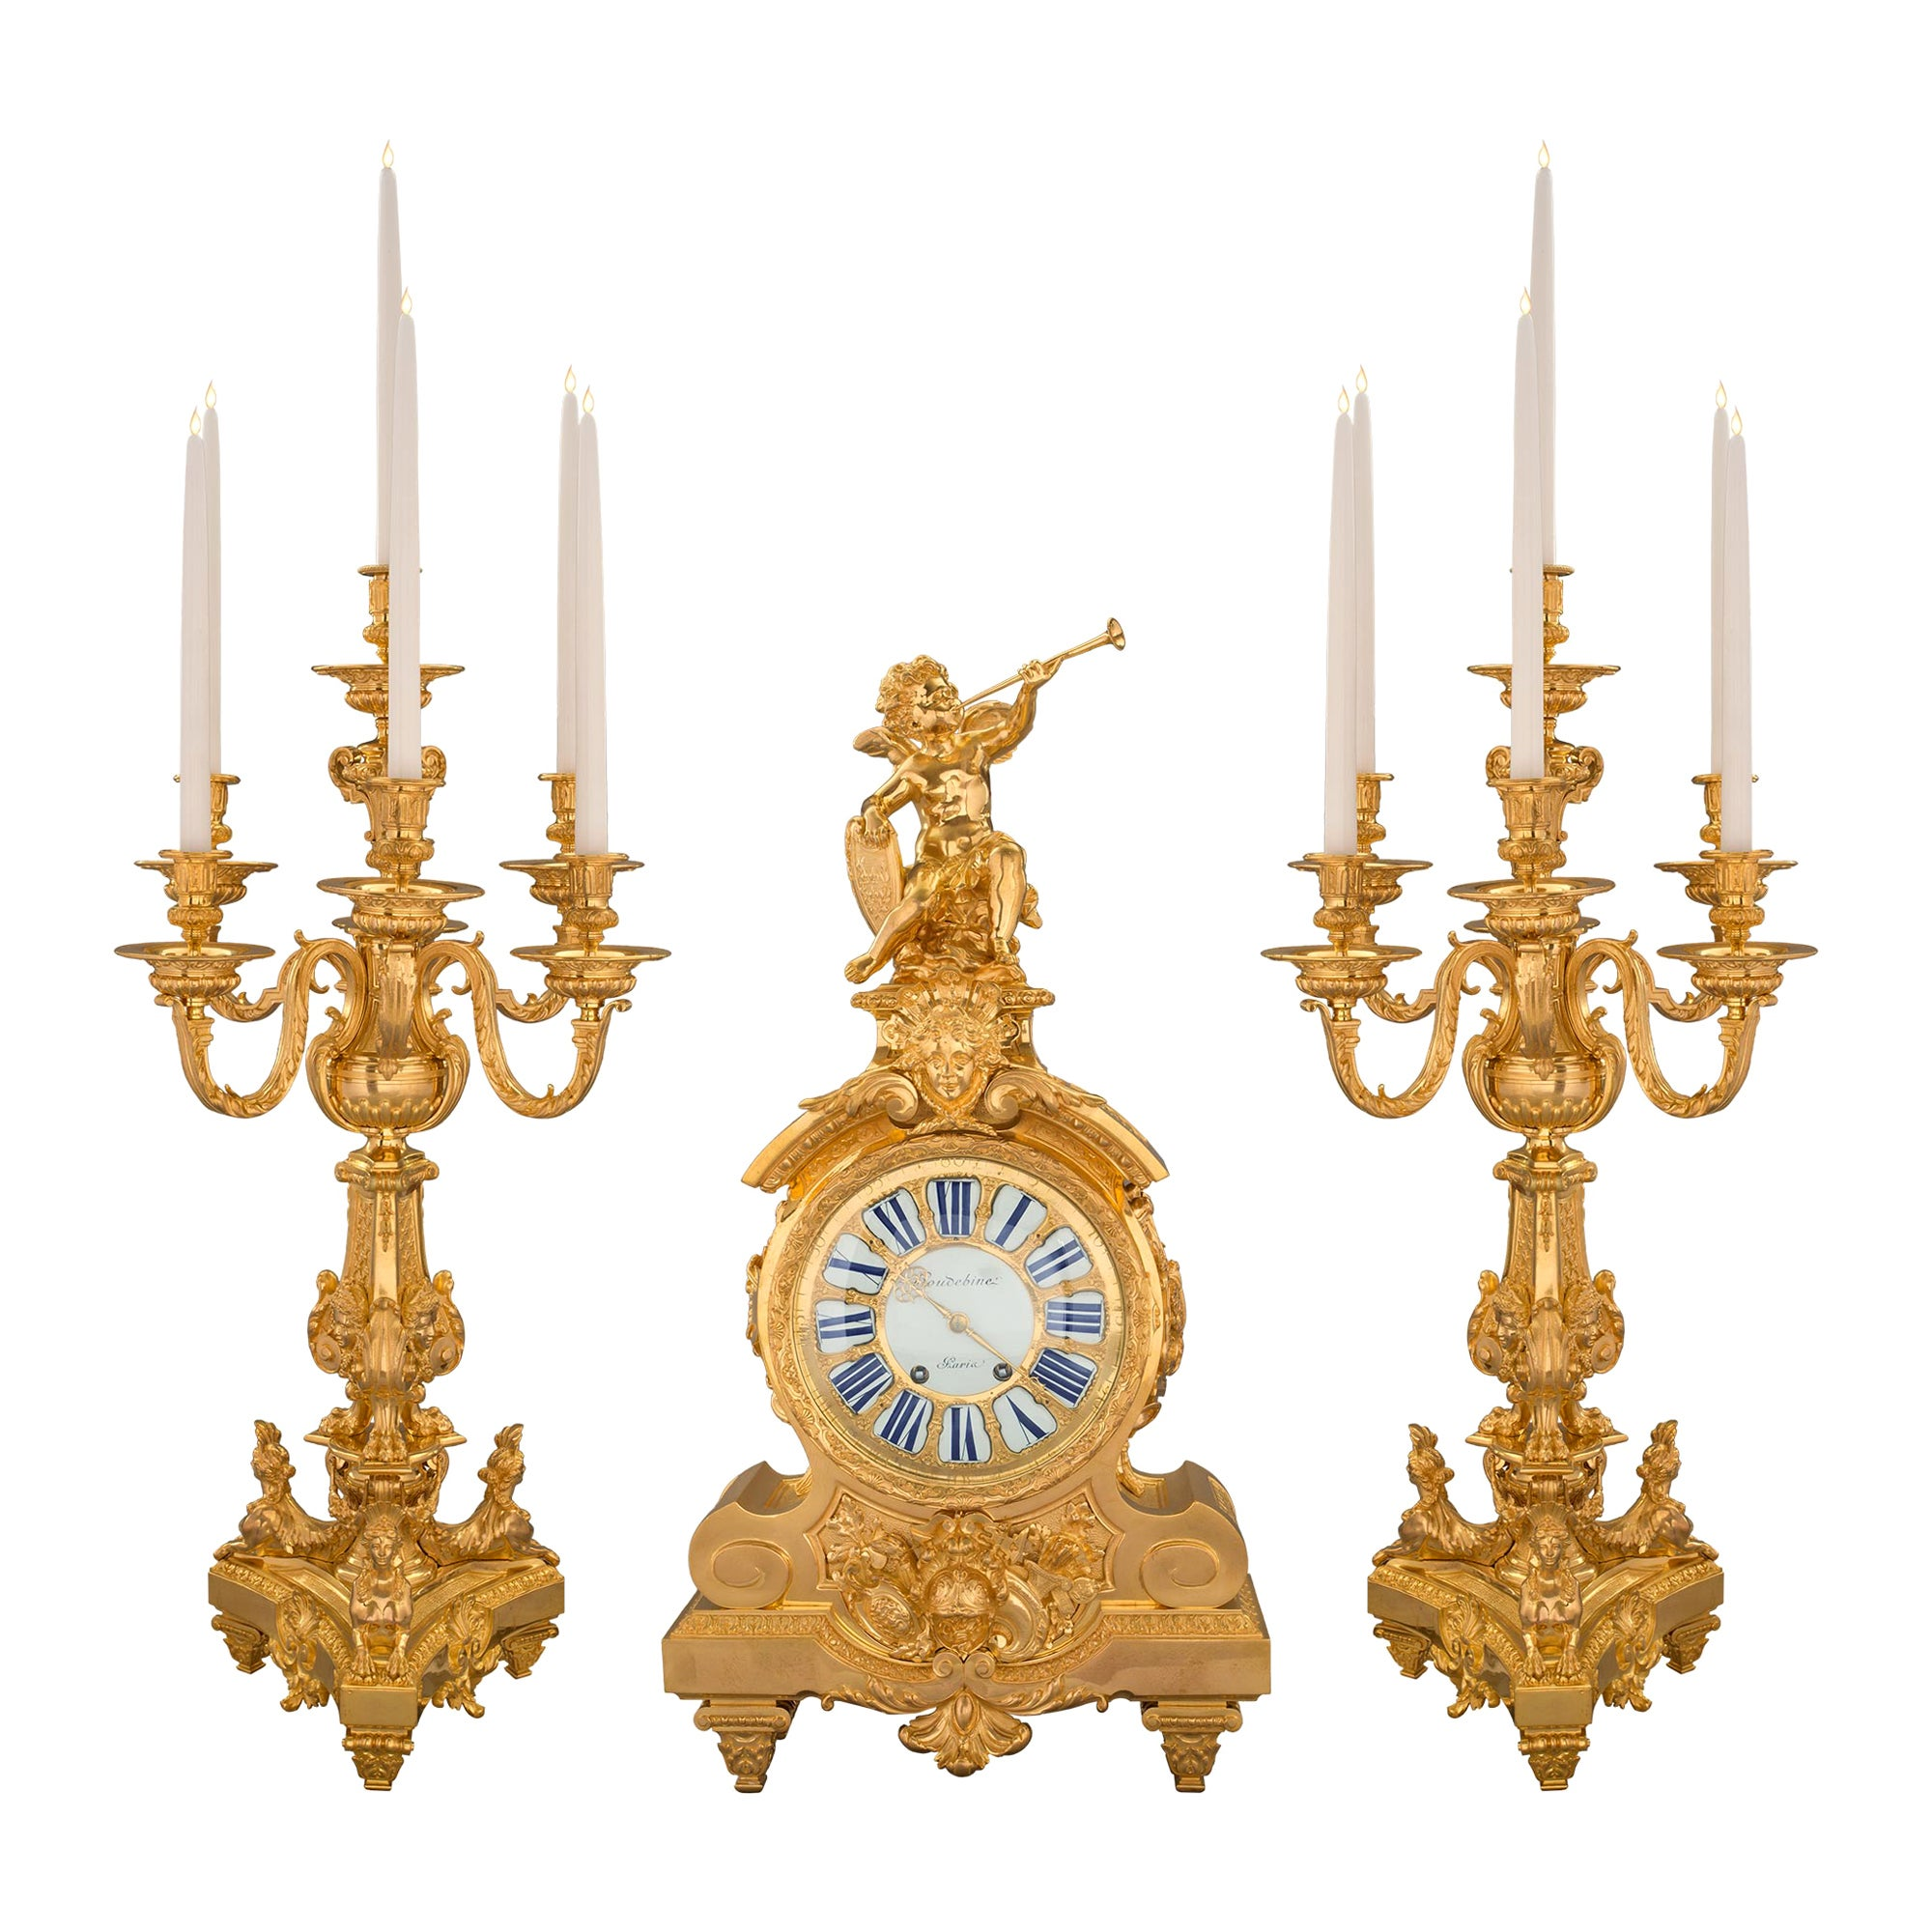 French 19th Century Louis XIV Style Ormolu Three-Piece Garniture Set